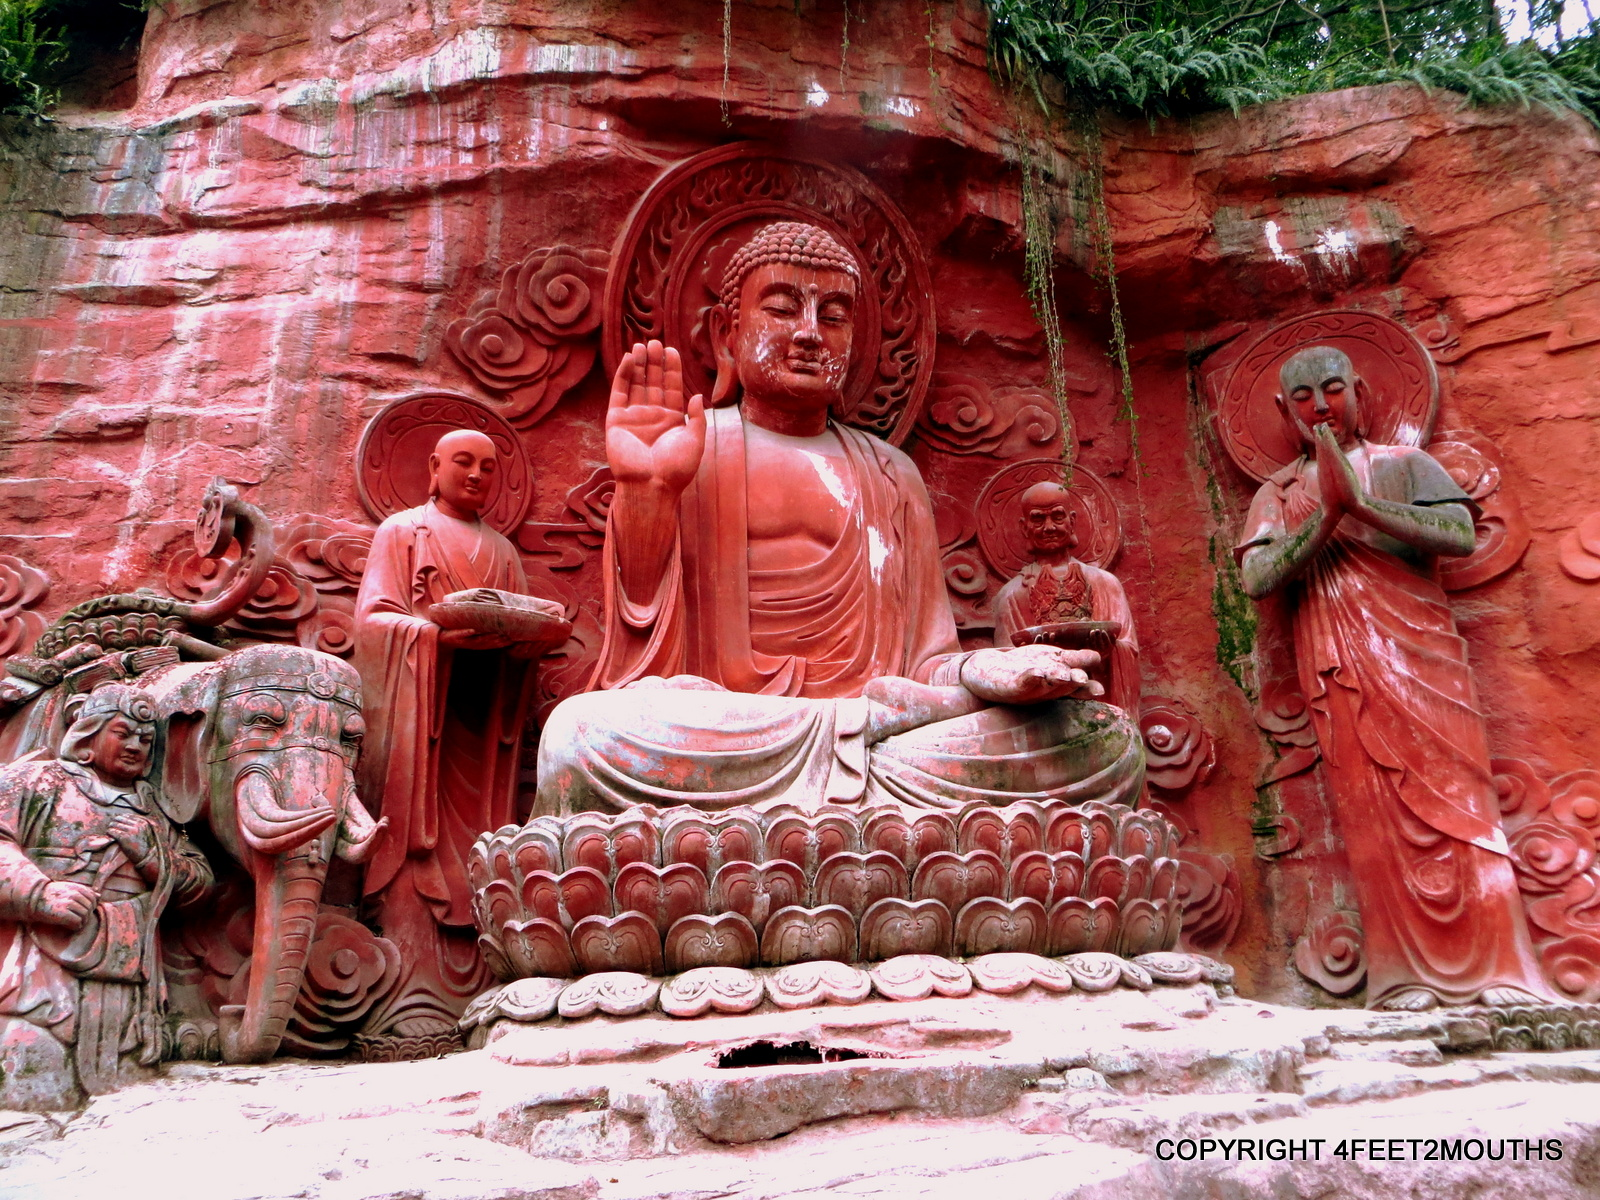 zigong buddhist personals See what 達康 黑皮 (heidakang) has discovered on pinterest, the world's biggest collection of everybody's favorite things.